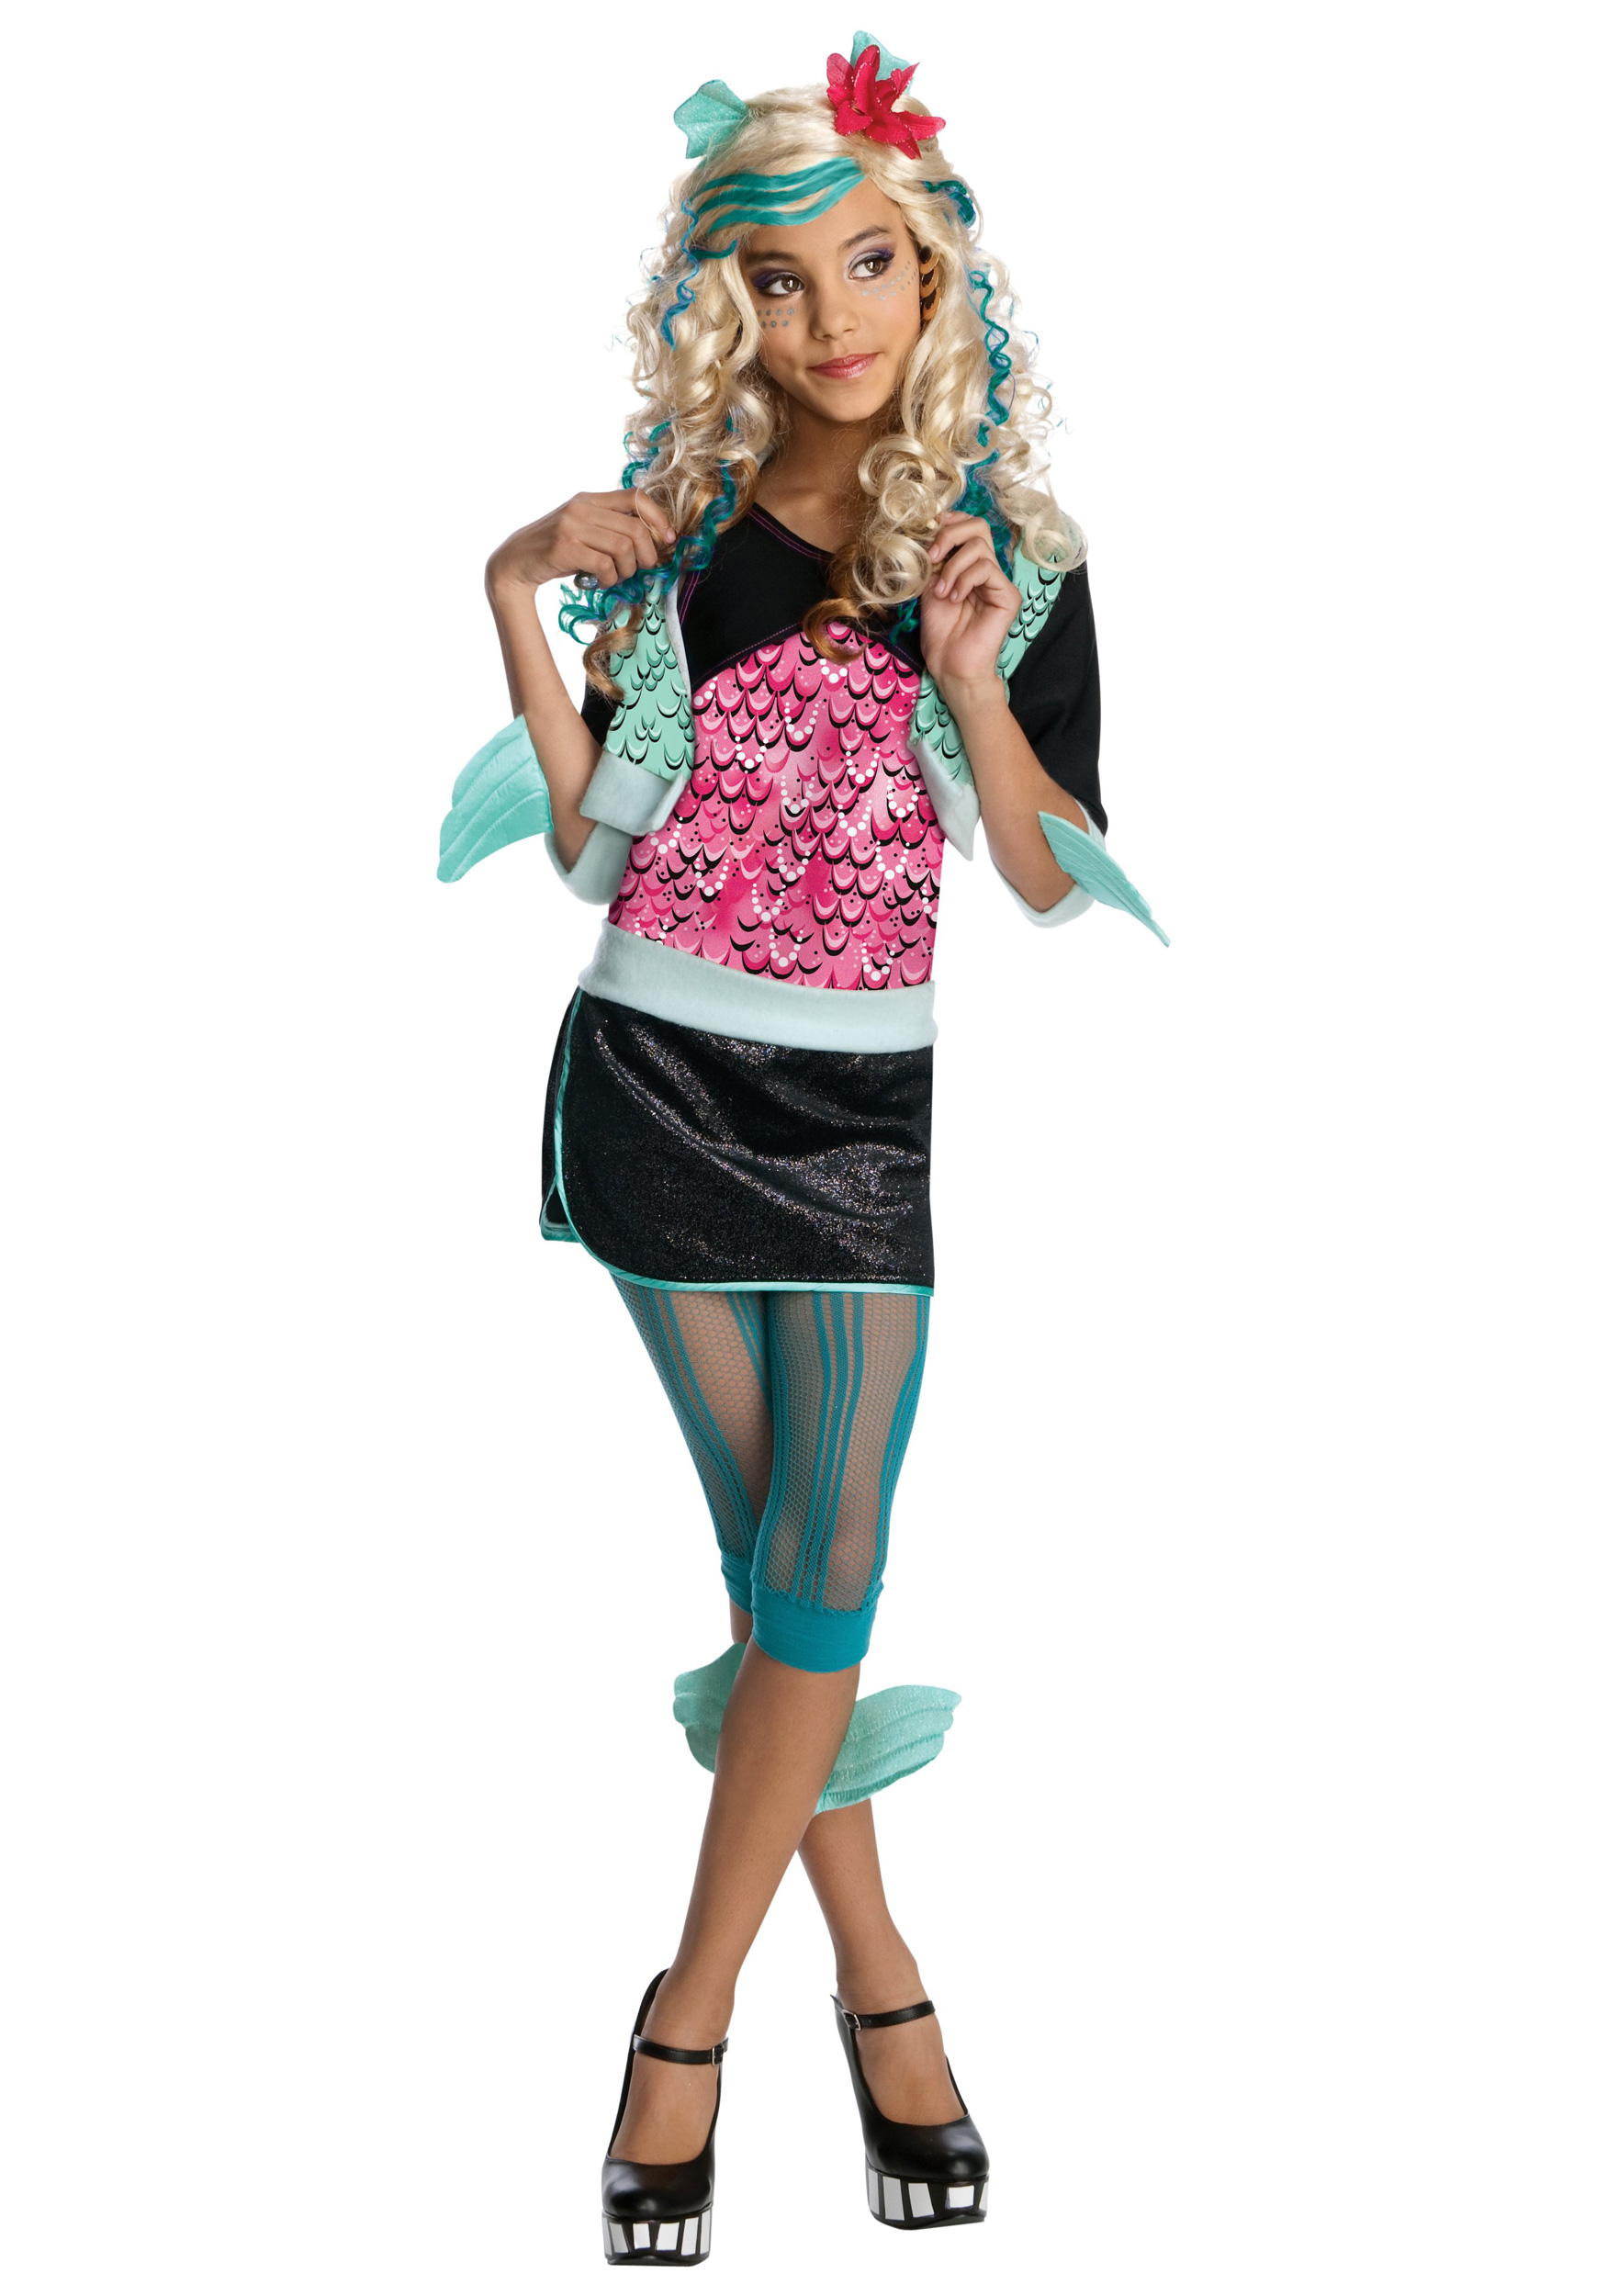 Ms. Blue is from Monster High